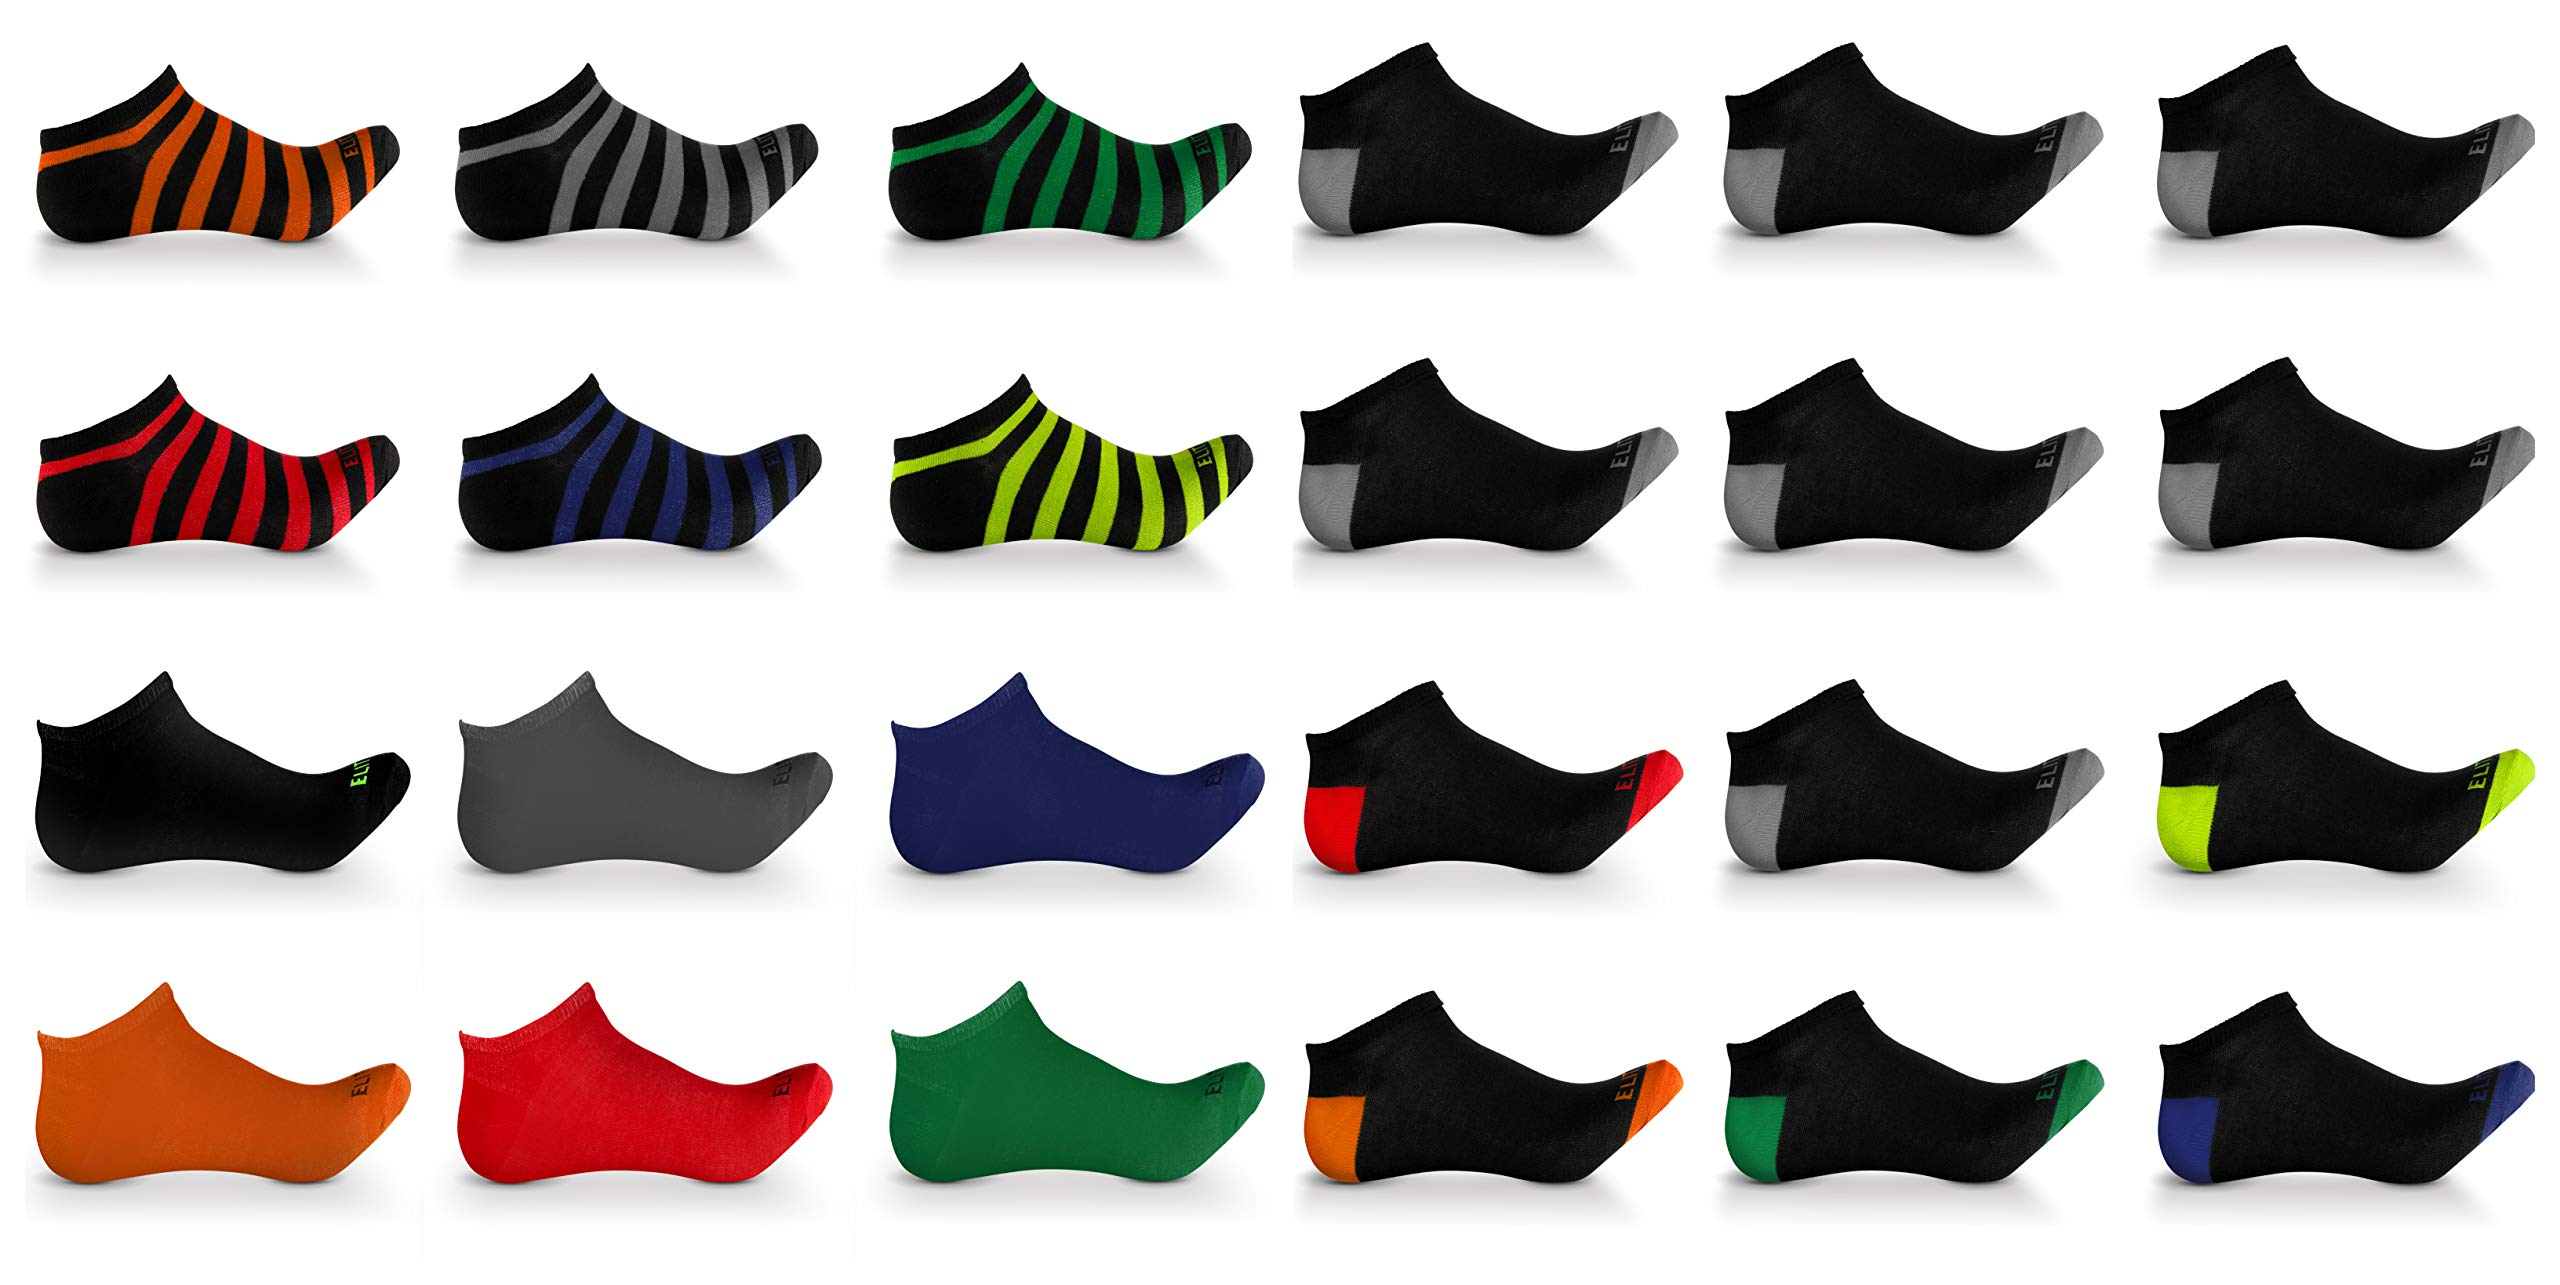 Men's Athletic Low Cut No show ankle Boat socks Ultimate Fashion Everyday Casual Athletic Pack of 24 Assorted pairs